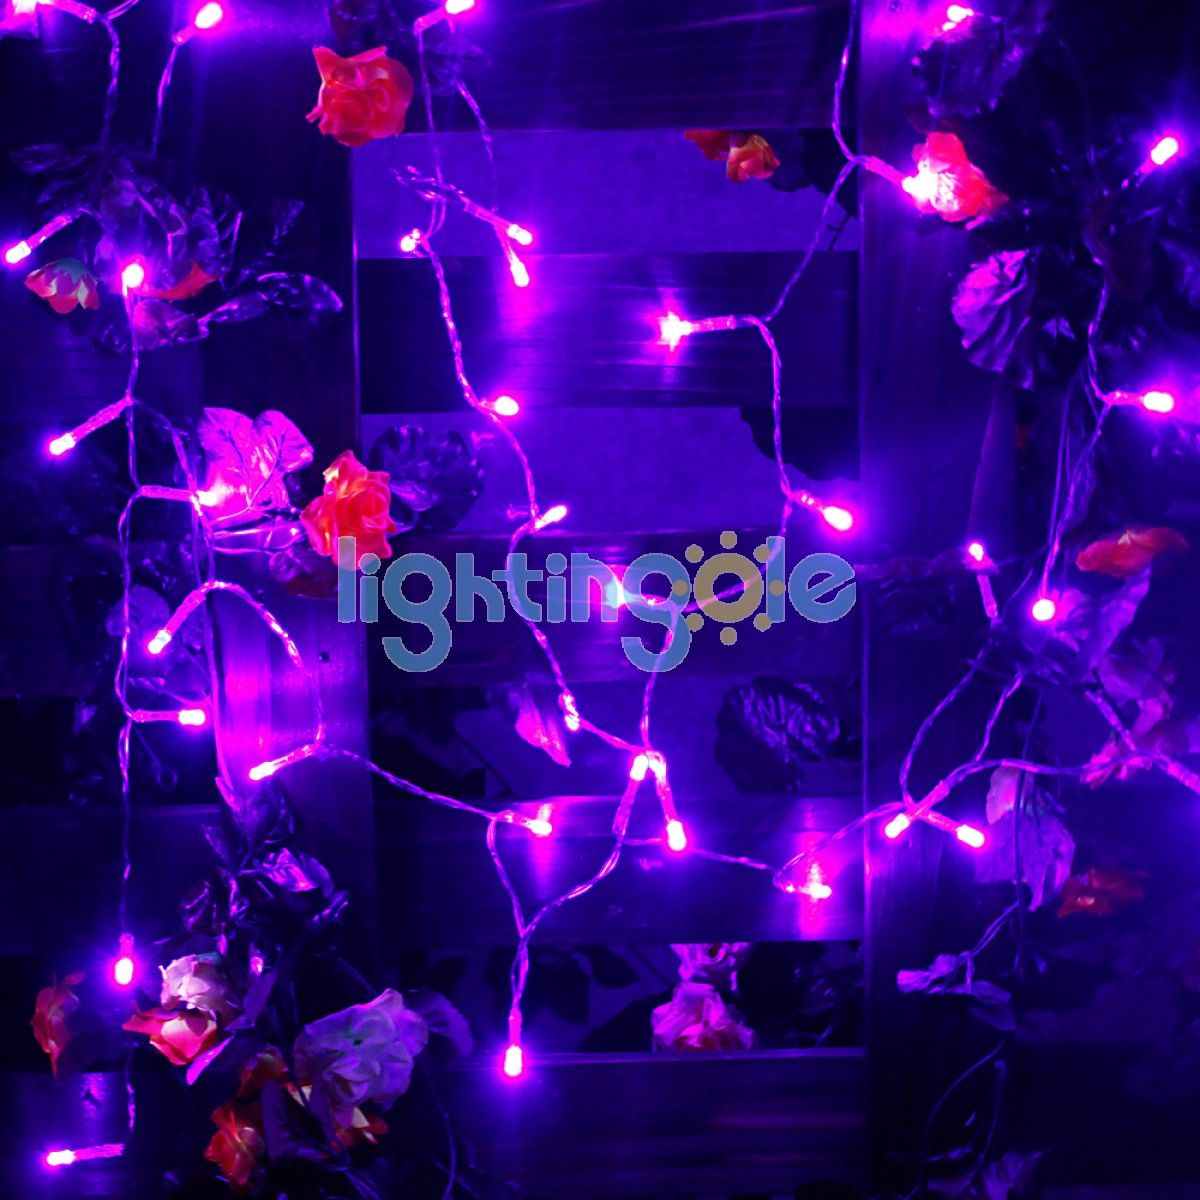 30 led3m mini battery operated string lights xmas wedding party holiday decor